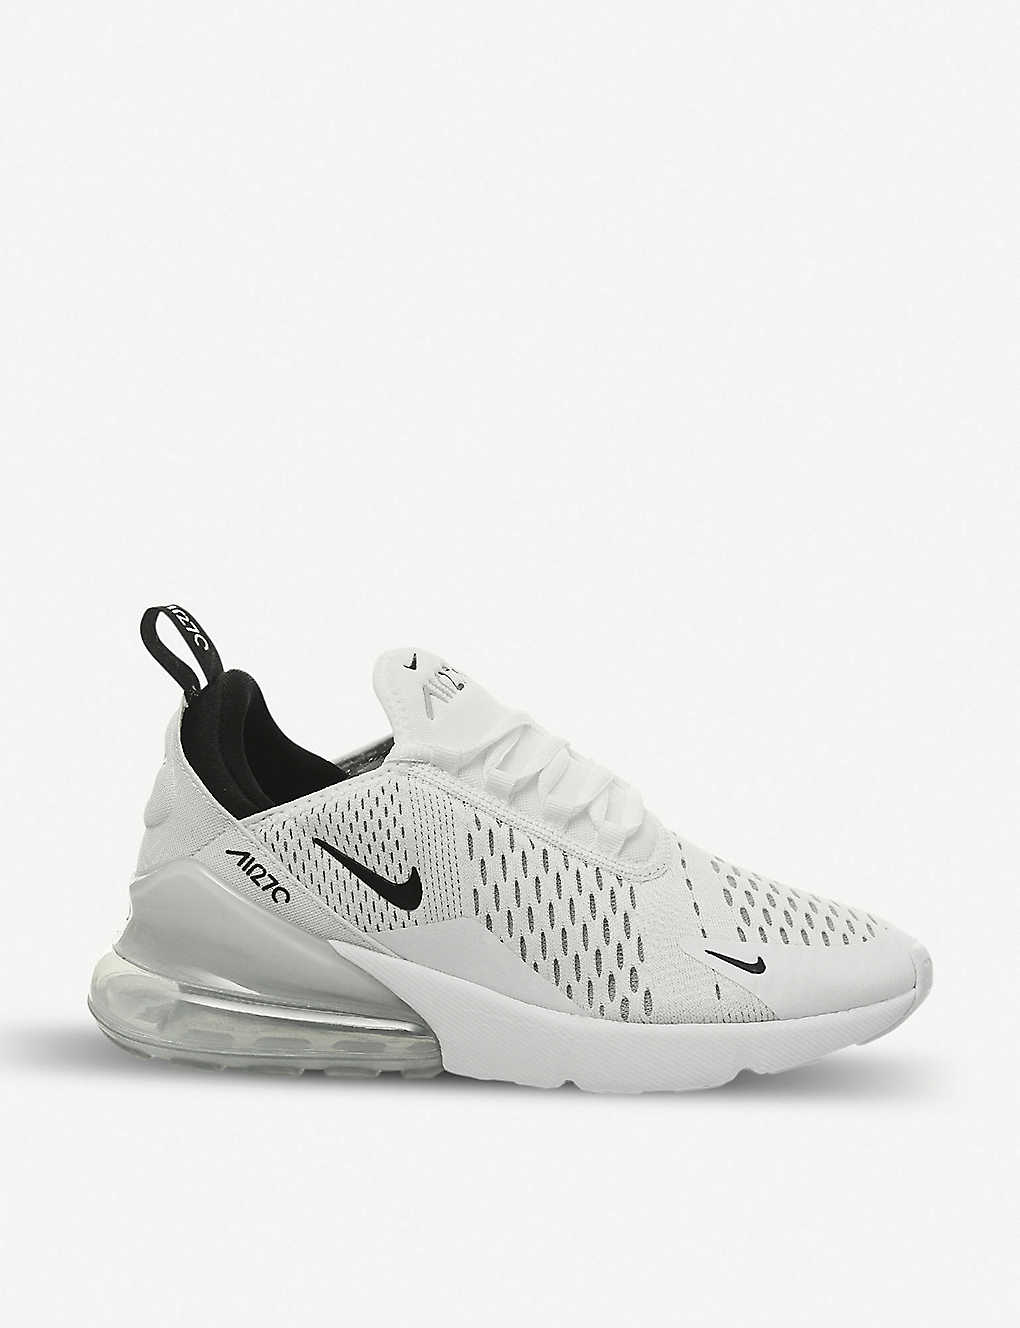 224aca09419d9 Air Max 270 trainers - White black white ...